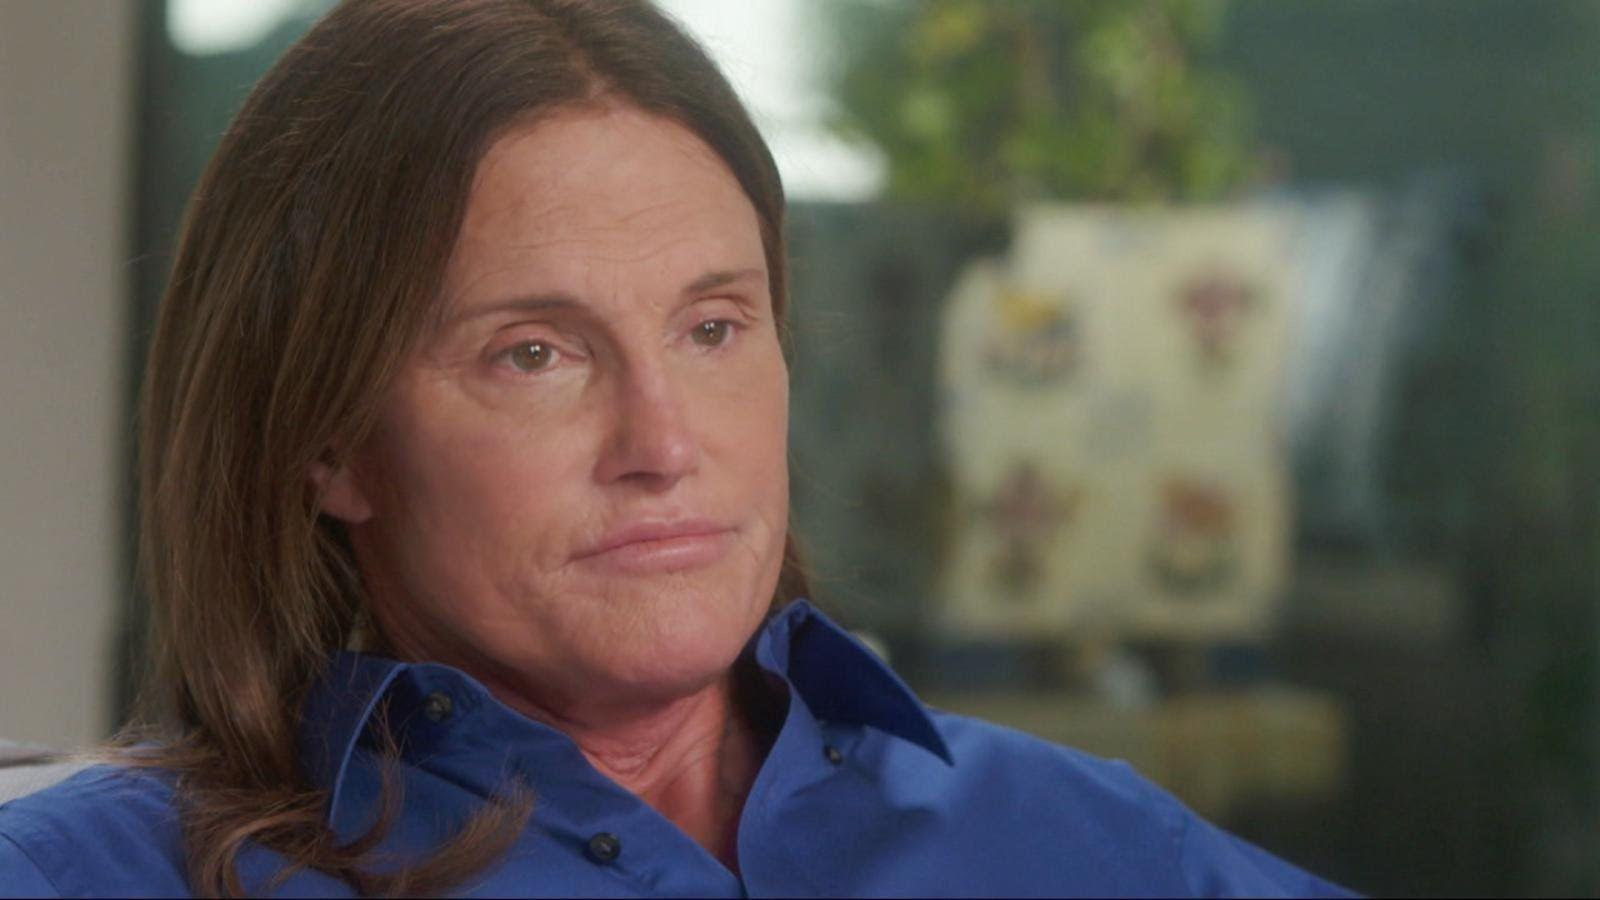 Bruce Jenner Wallpapers Group with 67 items